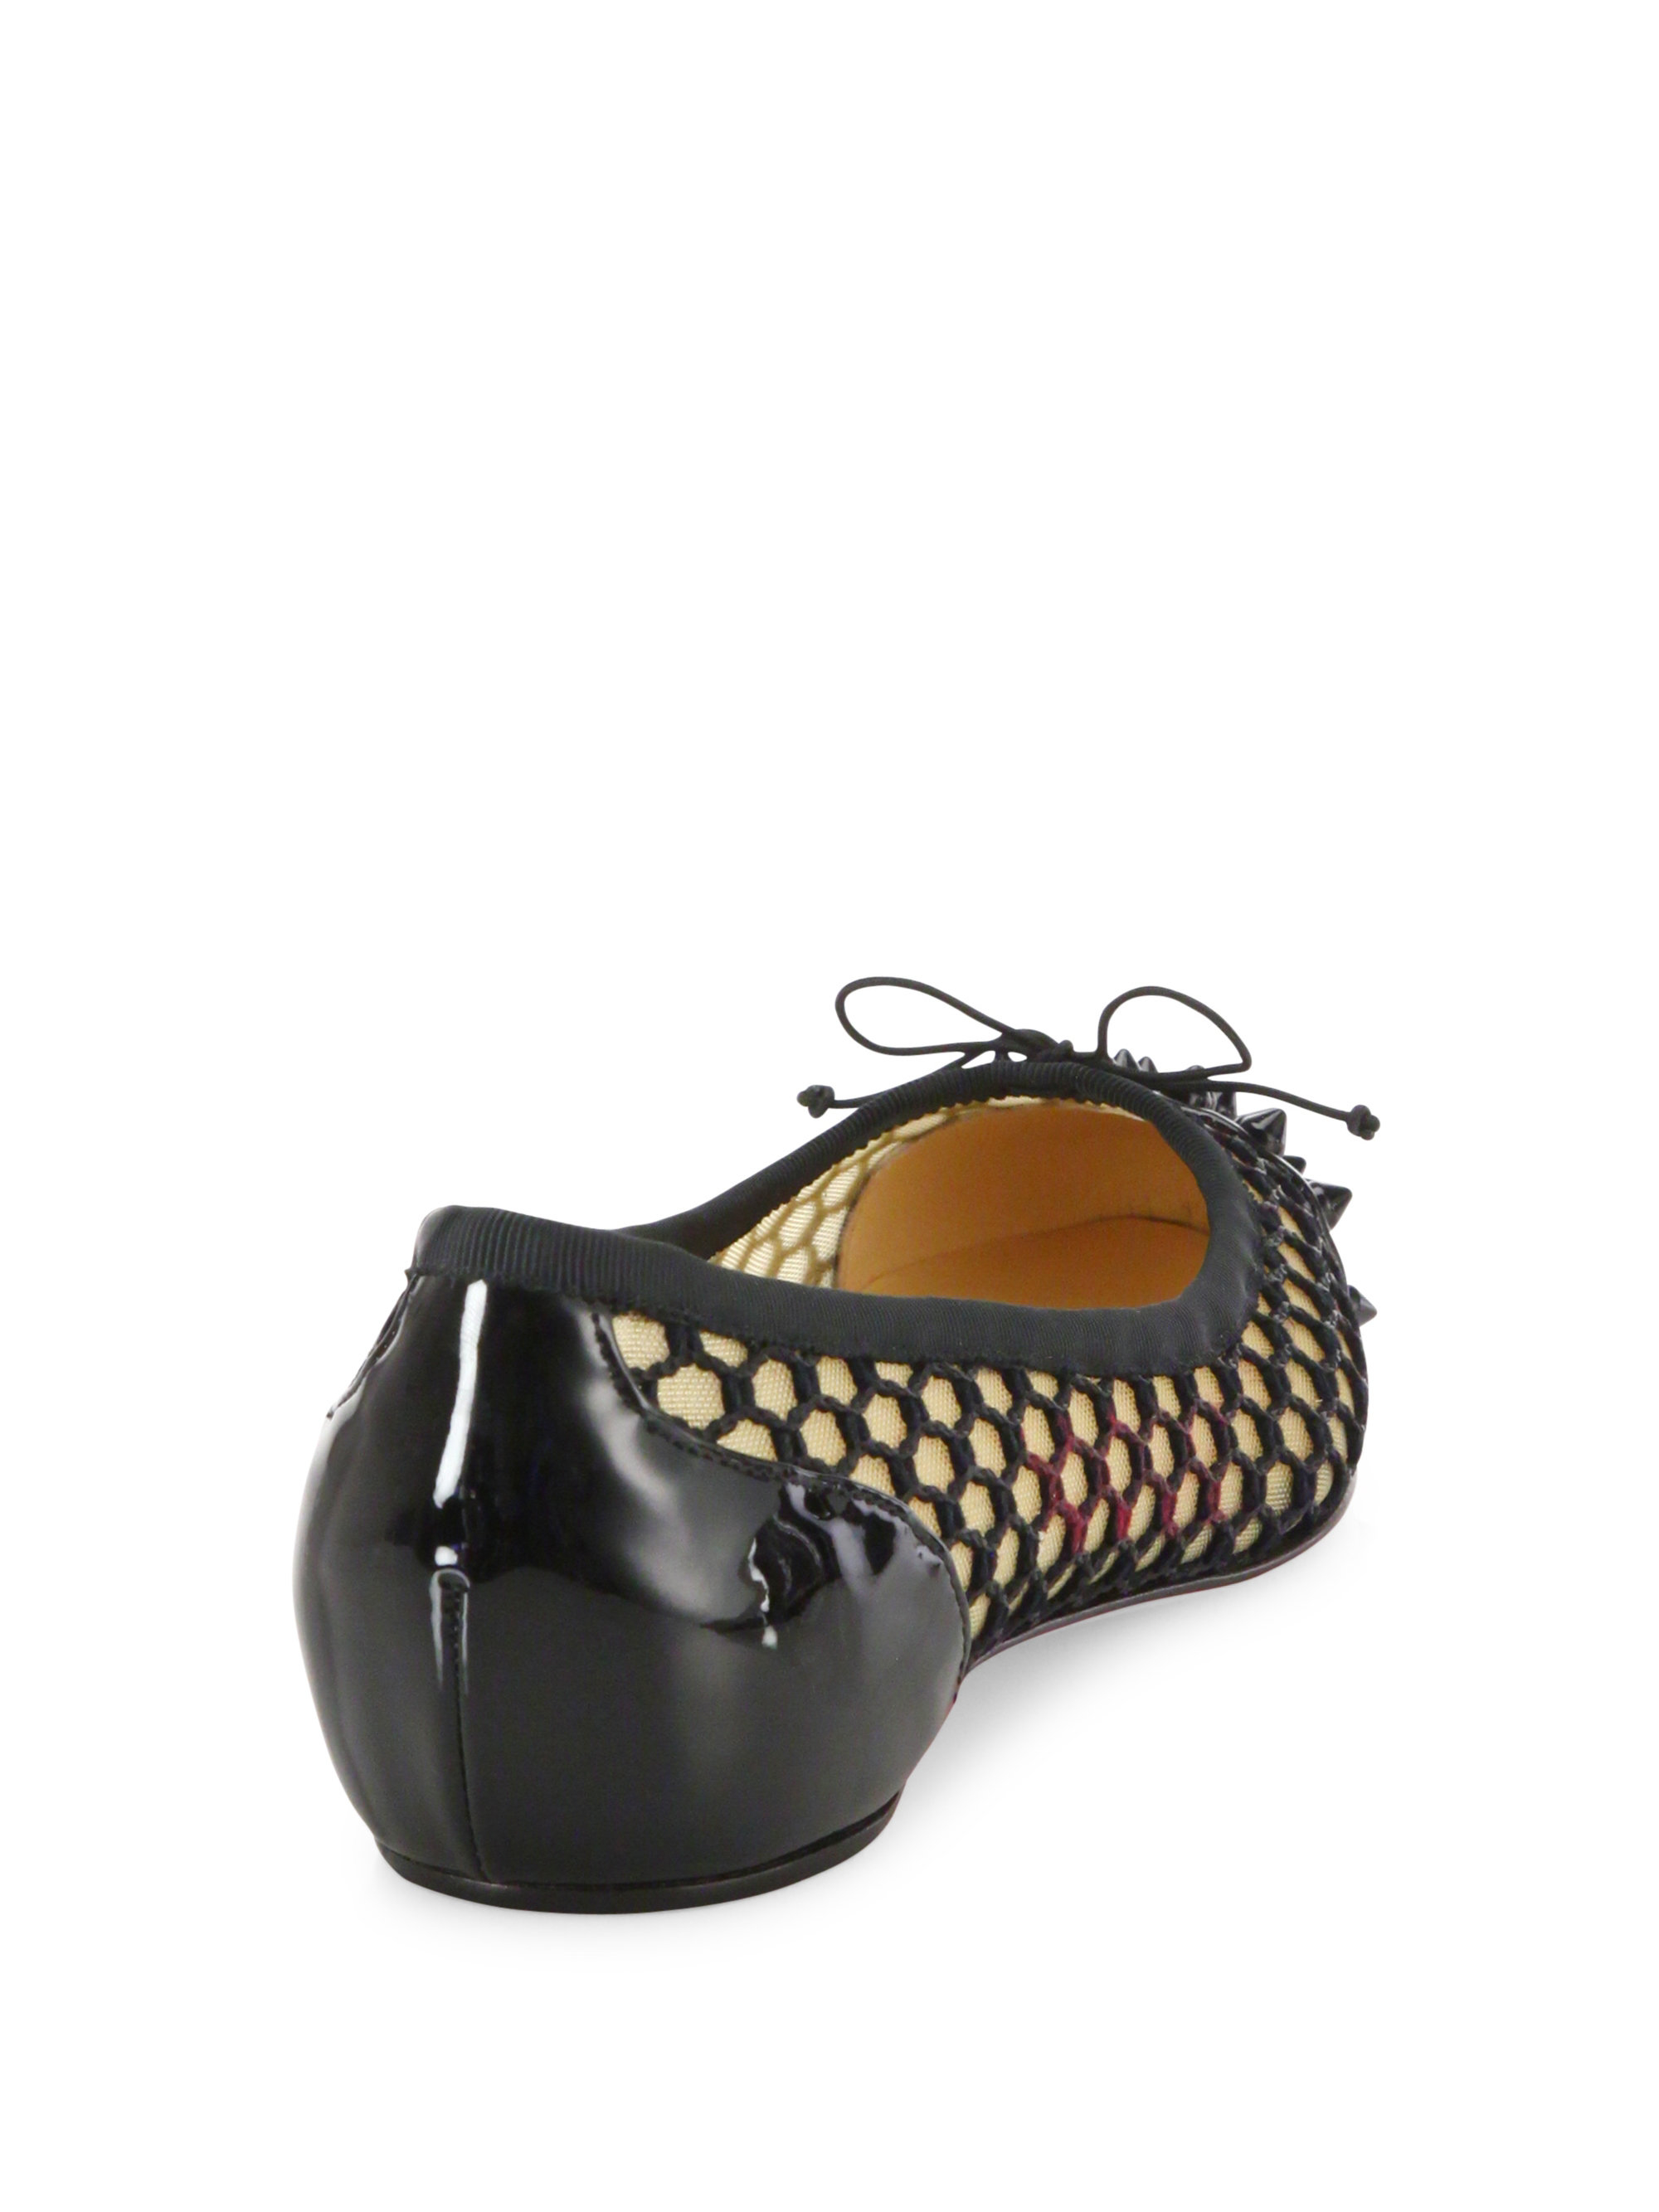 bbd14b874478 Lyst - Christian Louboutin Mix Spiked Patent Leather   Mesh Flats in Black